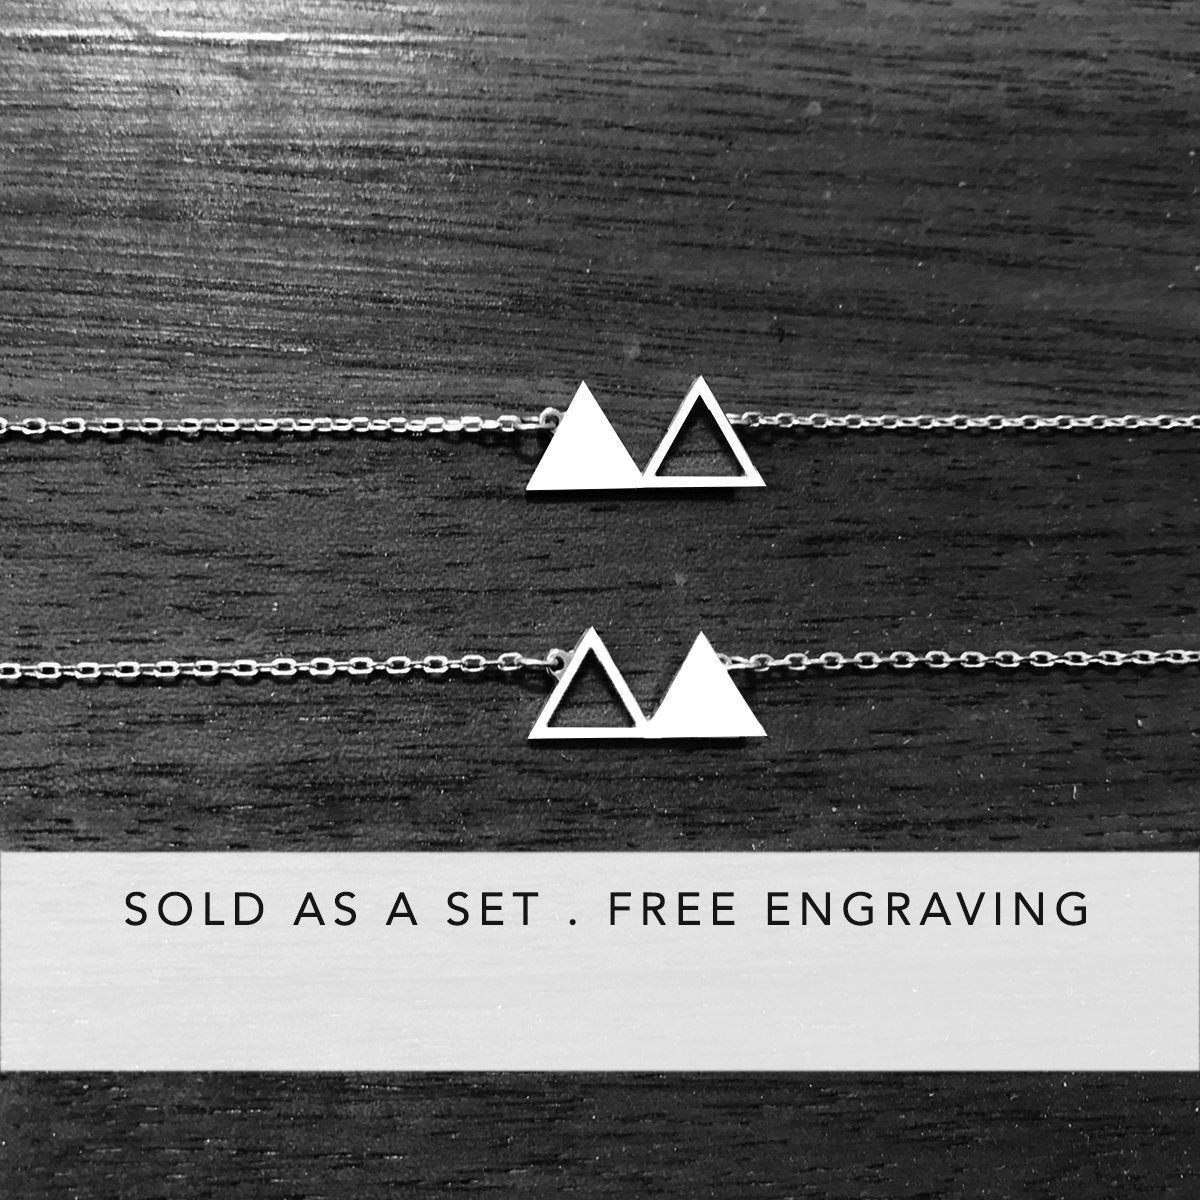 silver triangle necklaces, best friend gifts